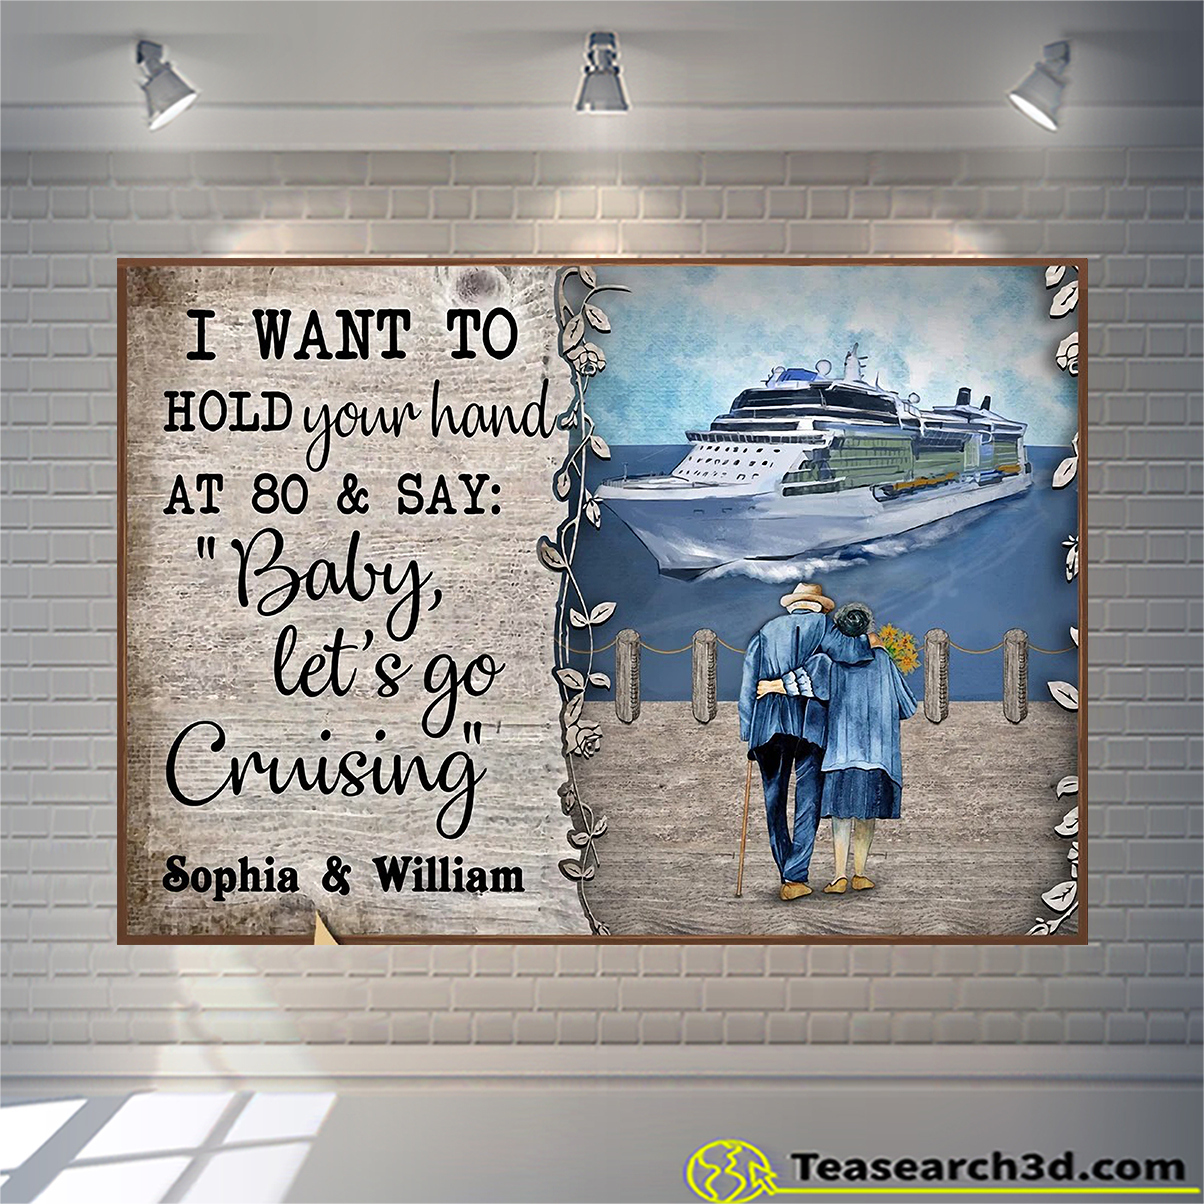 Personalized custom name cruising harbor baby let's go poster A1